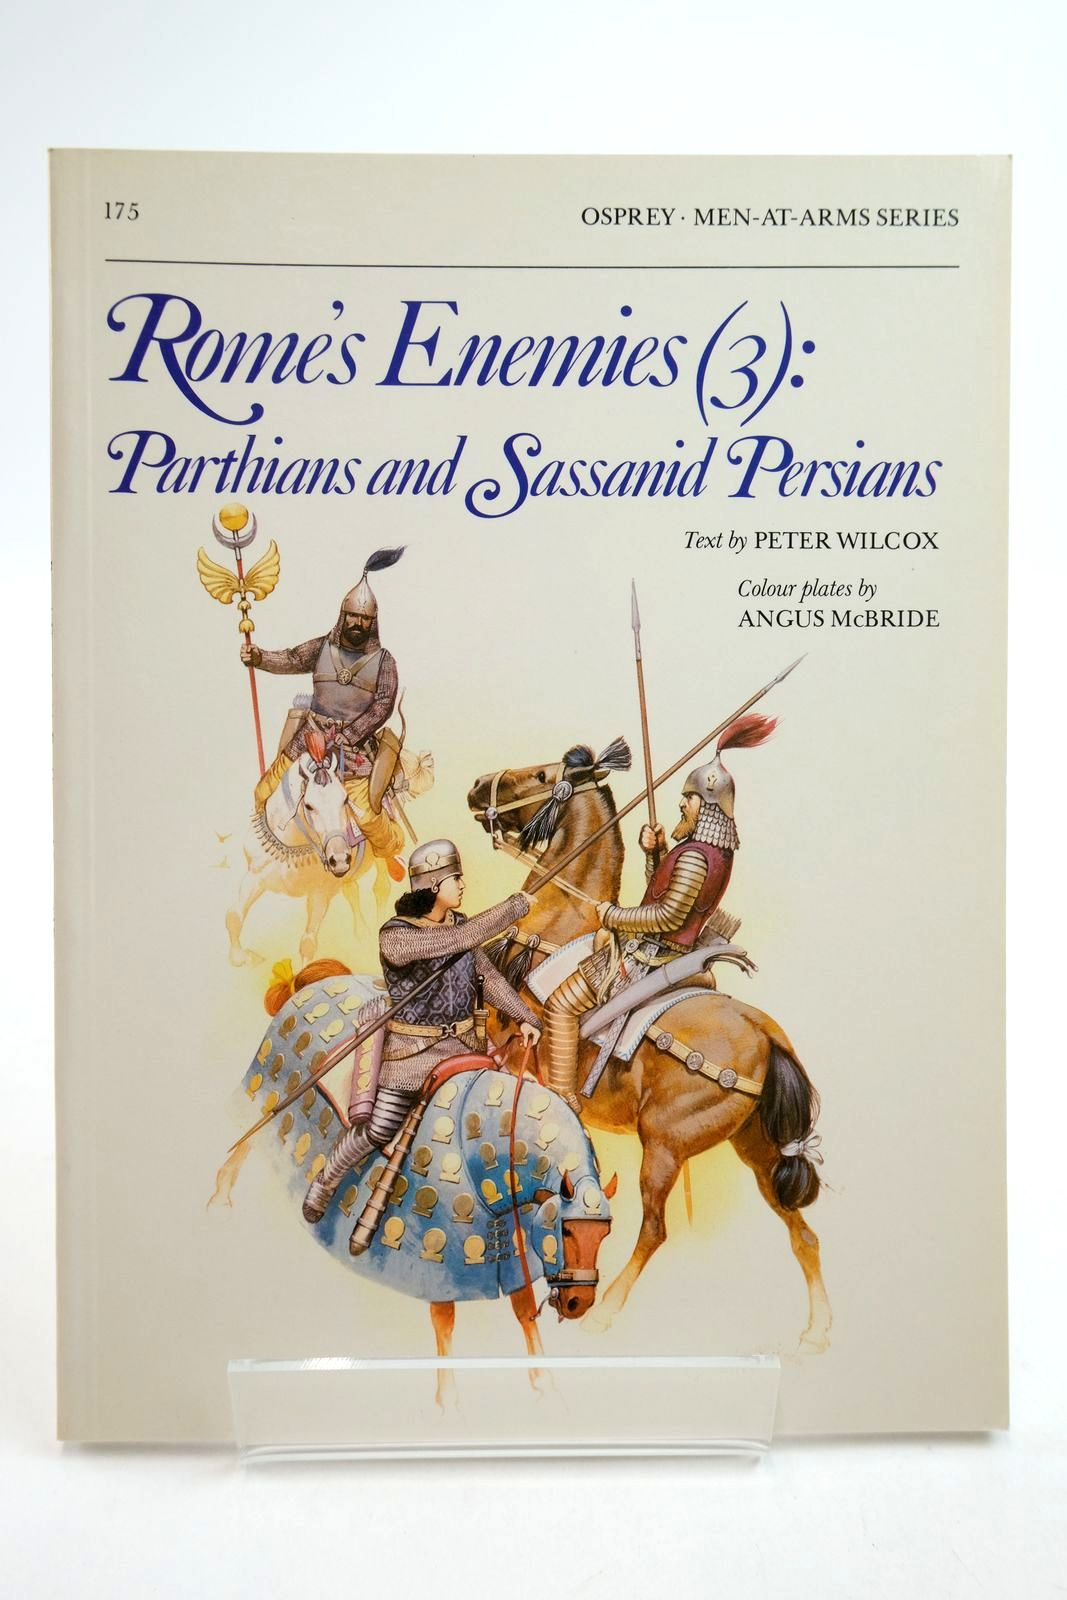 Photo of ROME'S ENEMIES (3): PARTHIANS AND SASSANID PERSIANS (MEN-AT-ARMS) written by Wilcox, Peter illustrated by McBride, Angus published by Osprey Publishing (STOCK CODE: 2134754)  for sale by Stella & Rose's Books